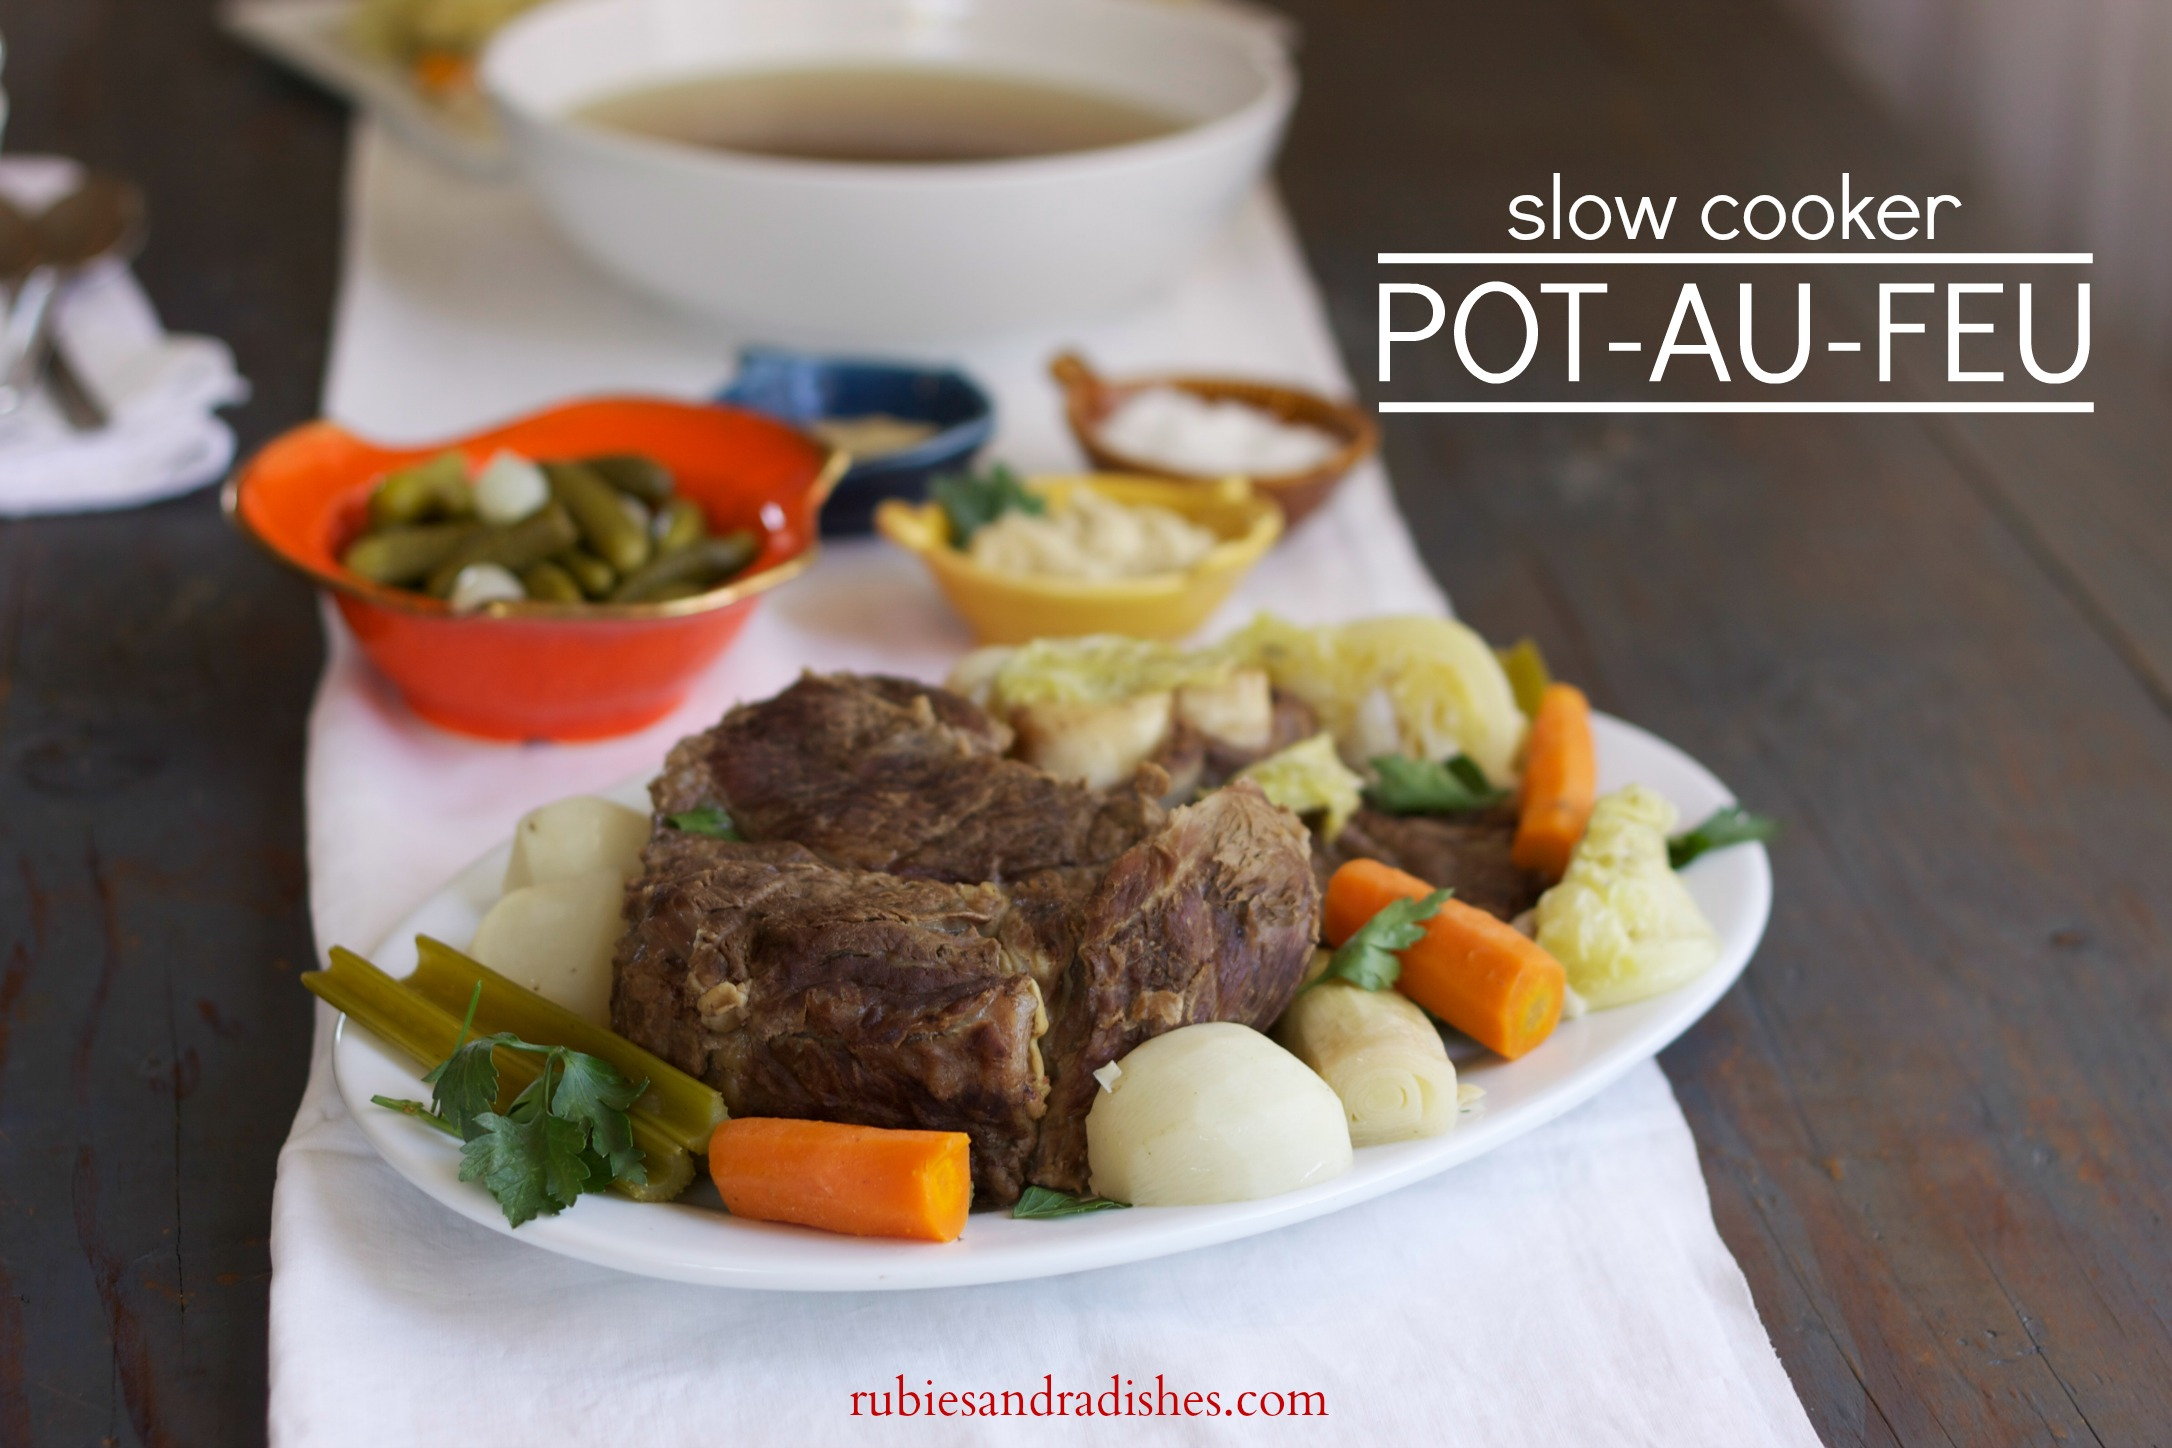 Slow Cooker Pot-au-feu